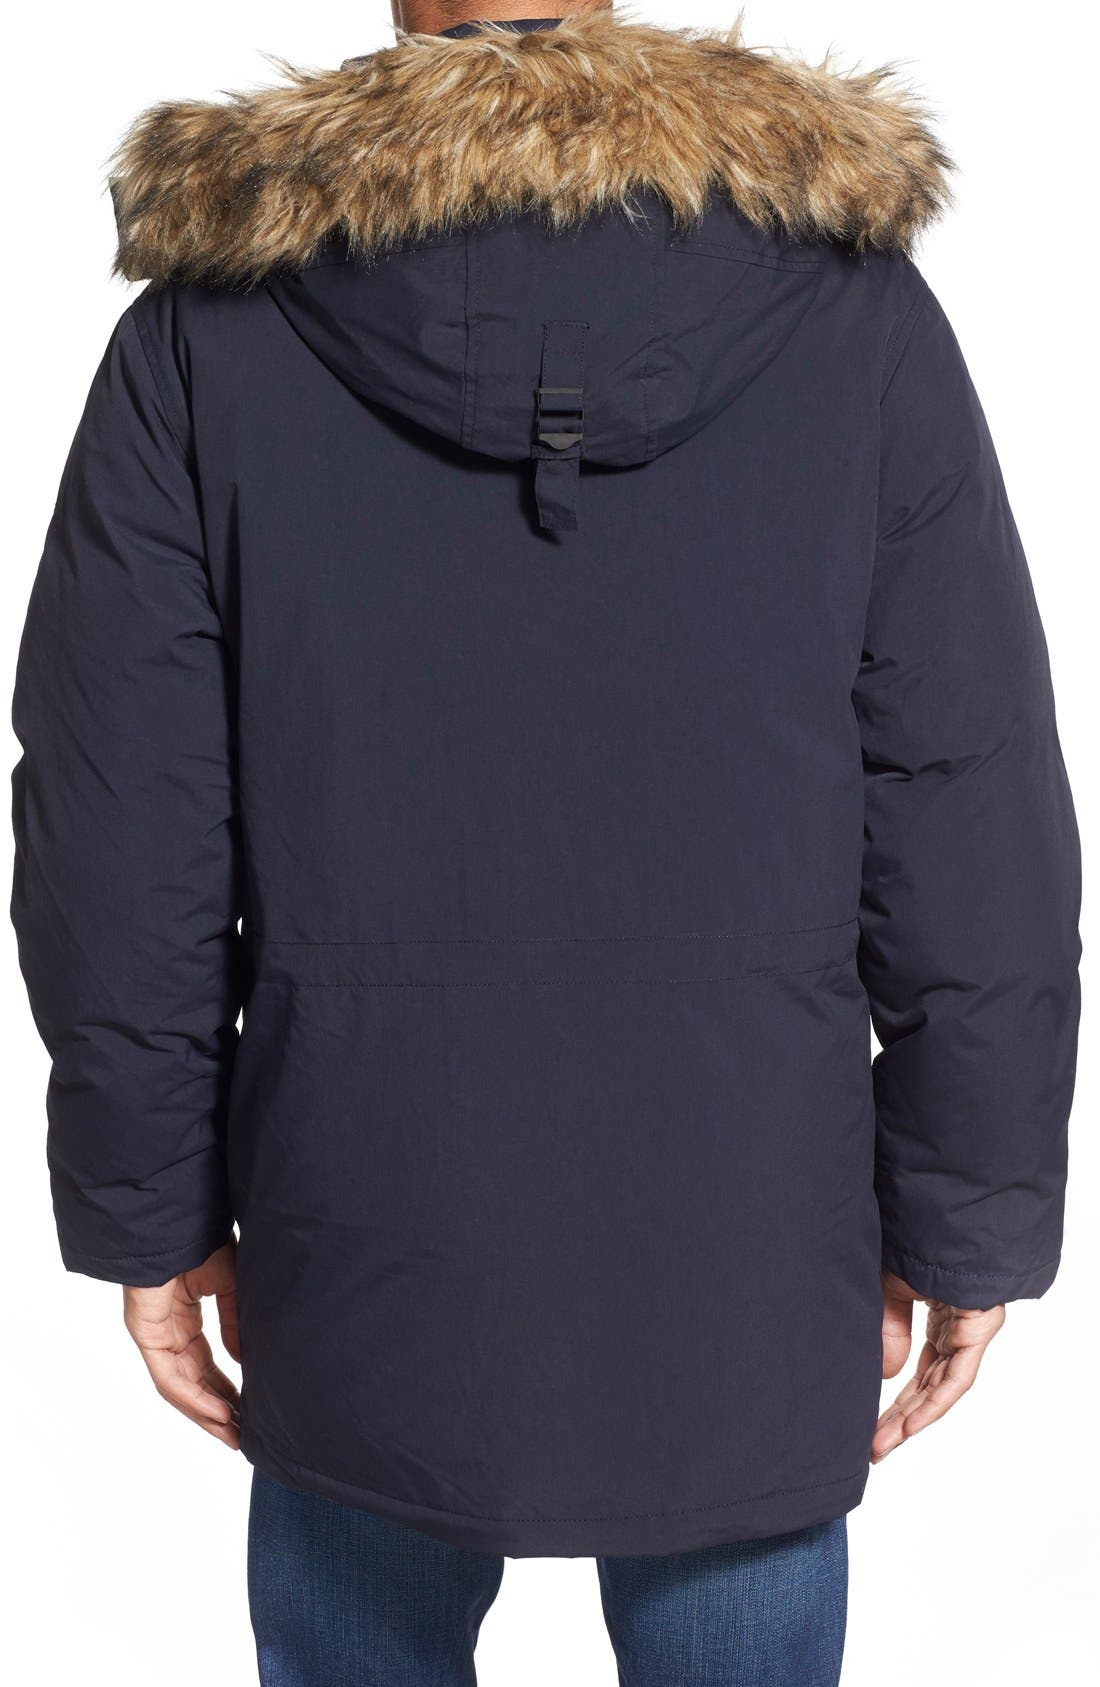 'Iceberg' Water Resistant Down Parka with Faux Fur Trim,                             Alternate thumbnail 2, color,                             Navy